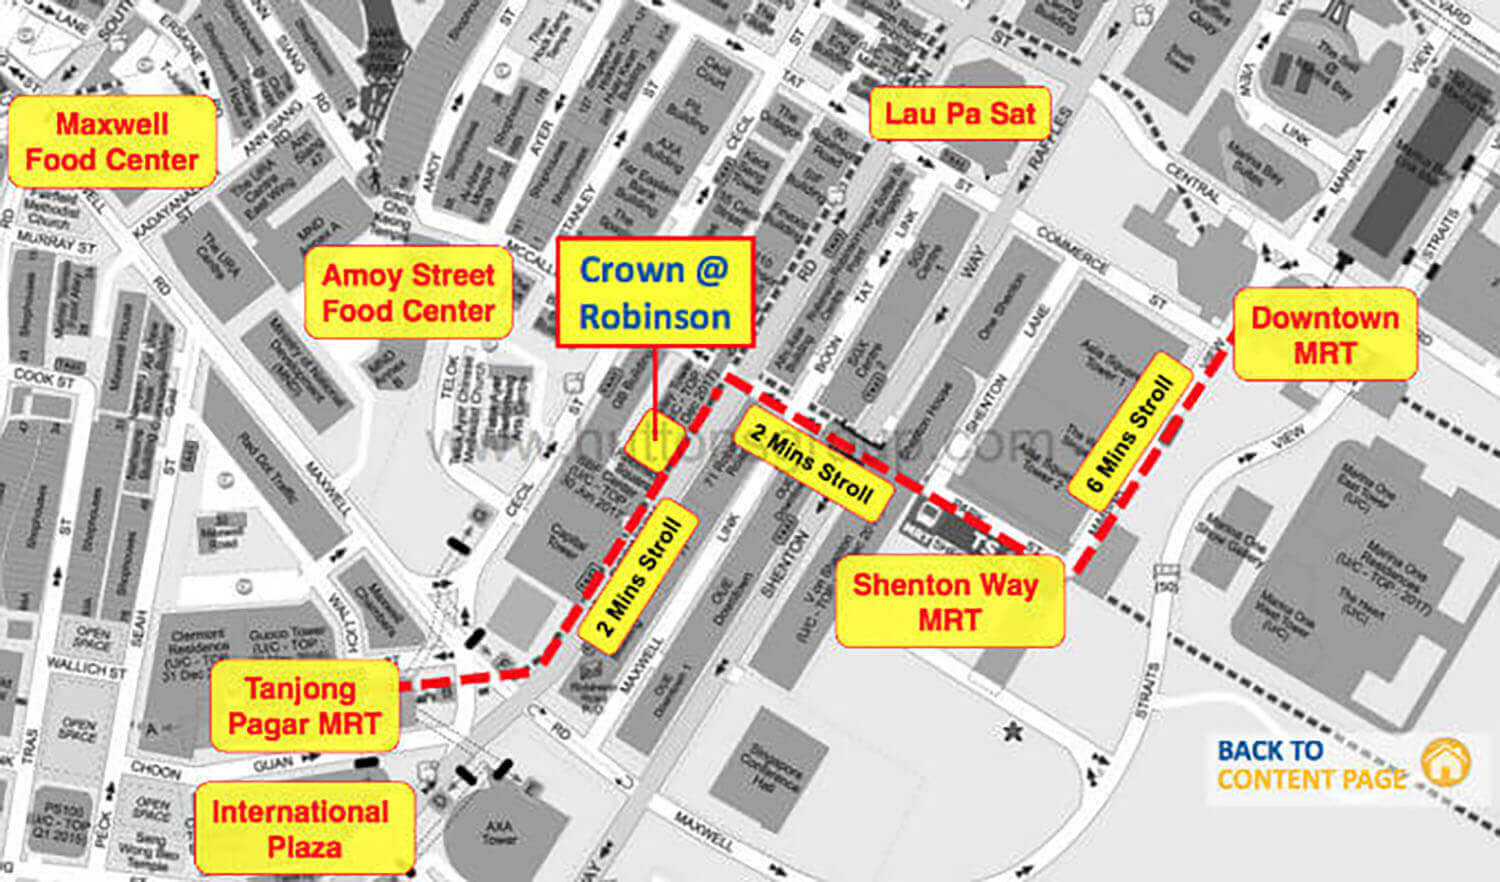 Crown @ Robinson Commercial Launch Street Map